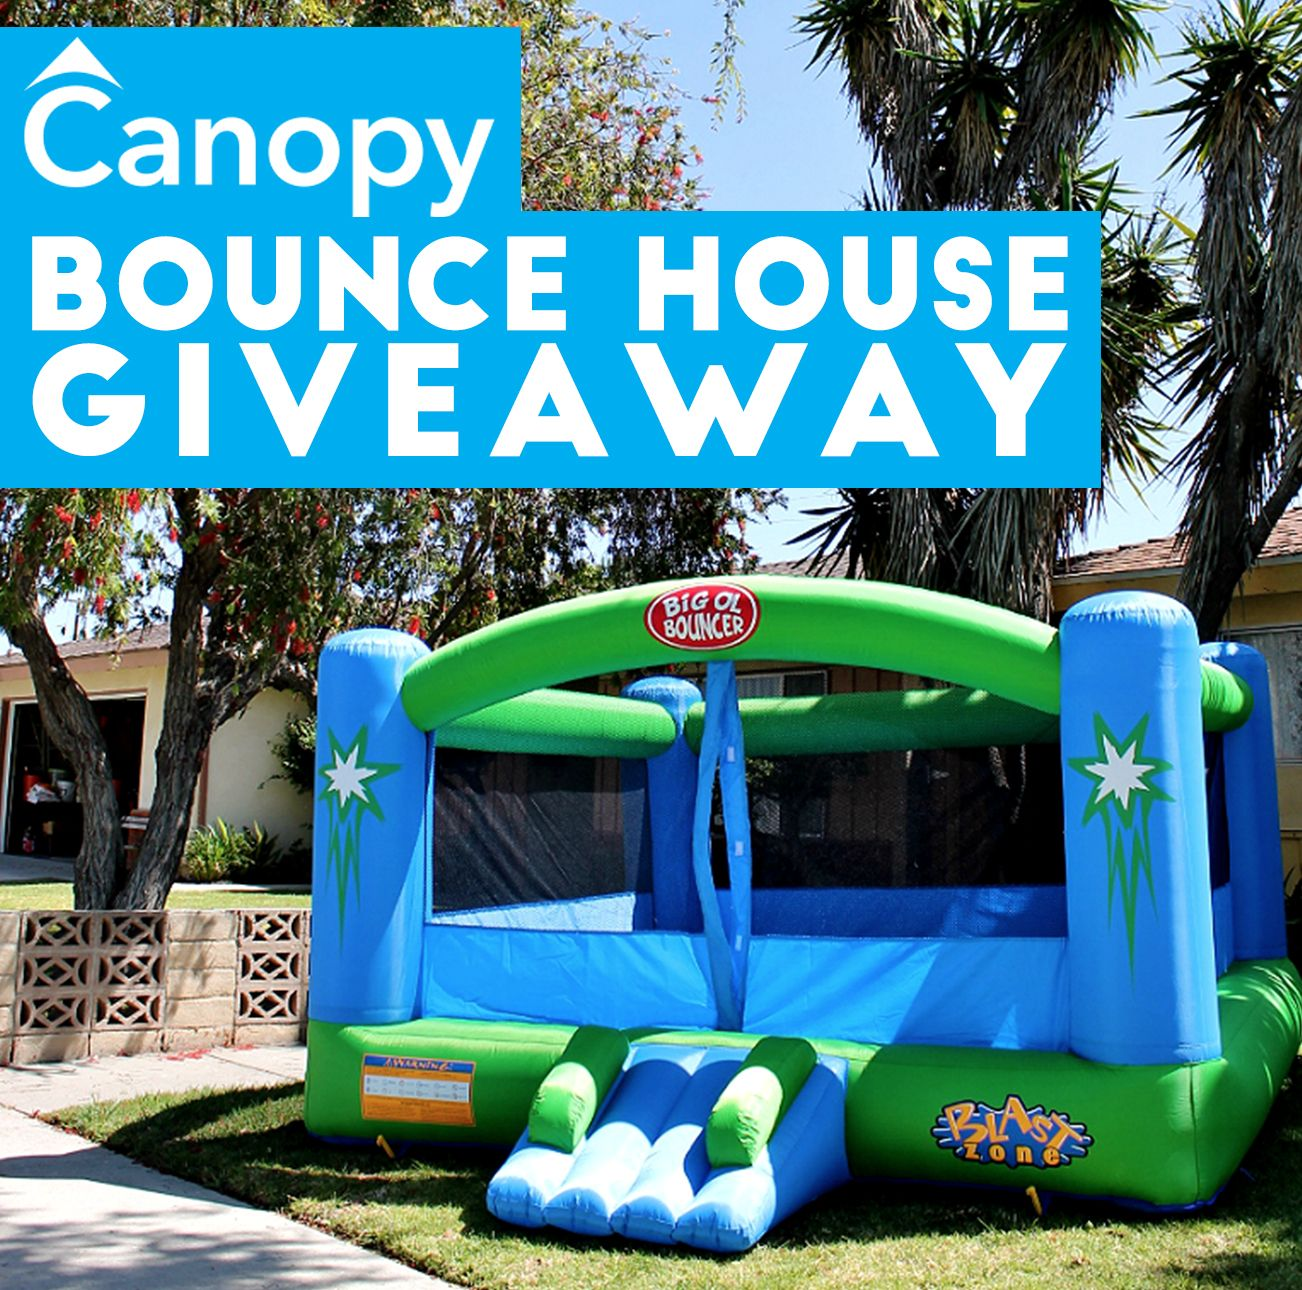 Remarkable Giveaway Enter To Win A Bounce House From Canopy Lawn Care Download Free Architecture Designs Scobabritishbridgeorg